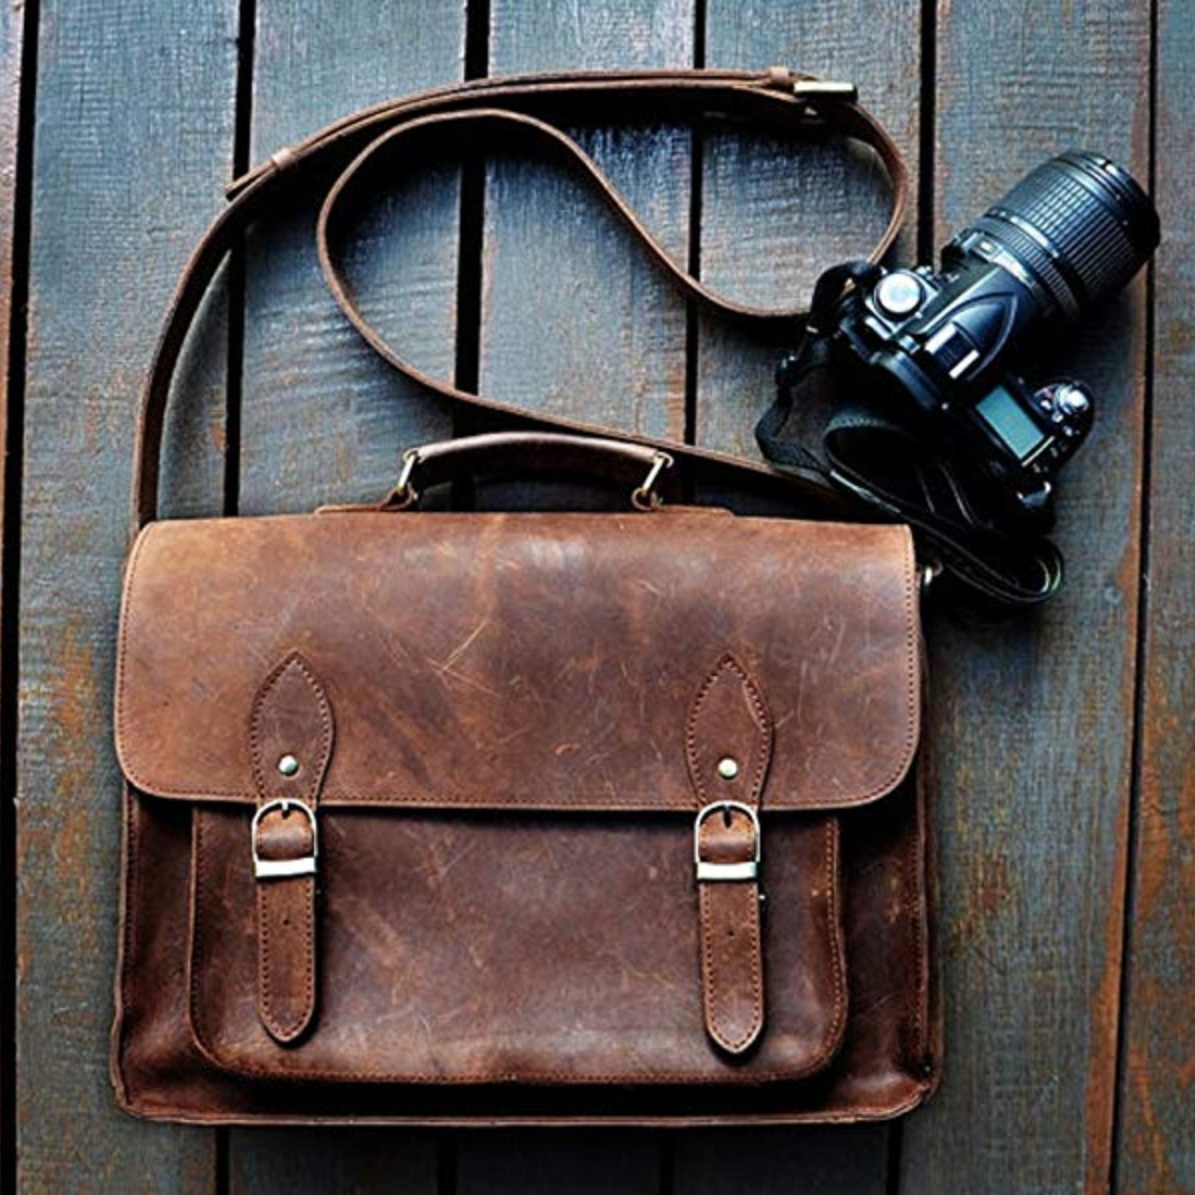 leather-travel-dslr-camera-bag.jpg